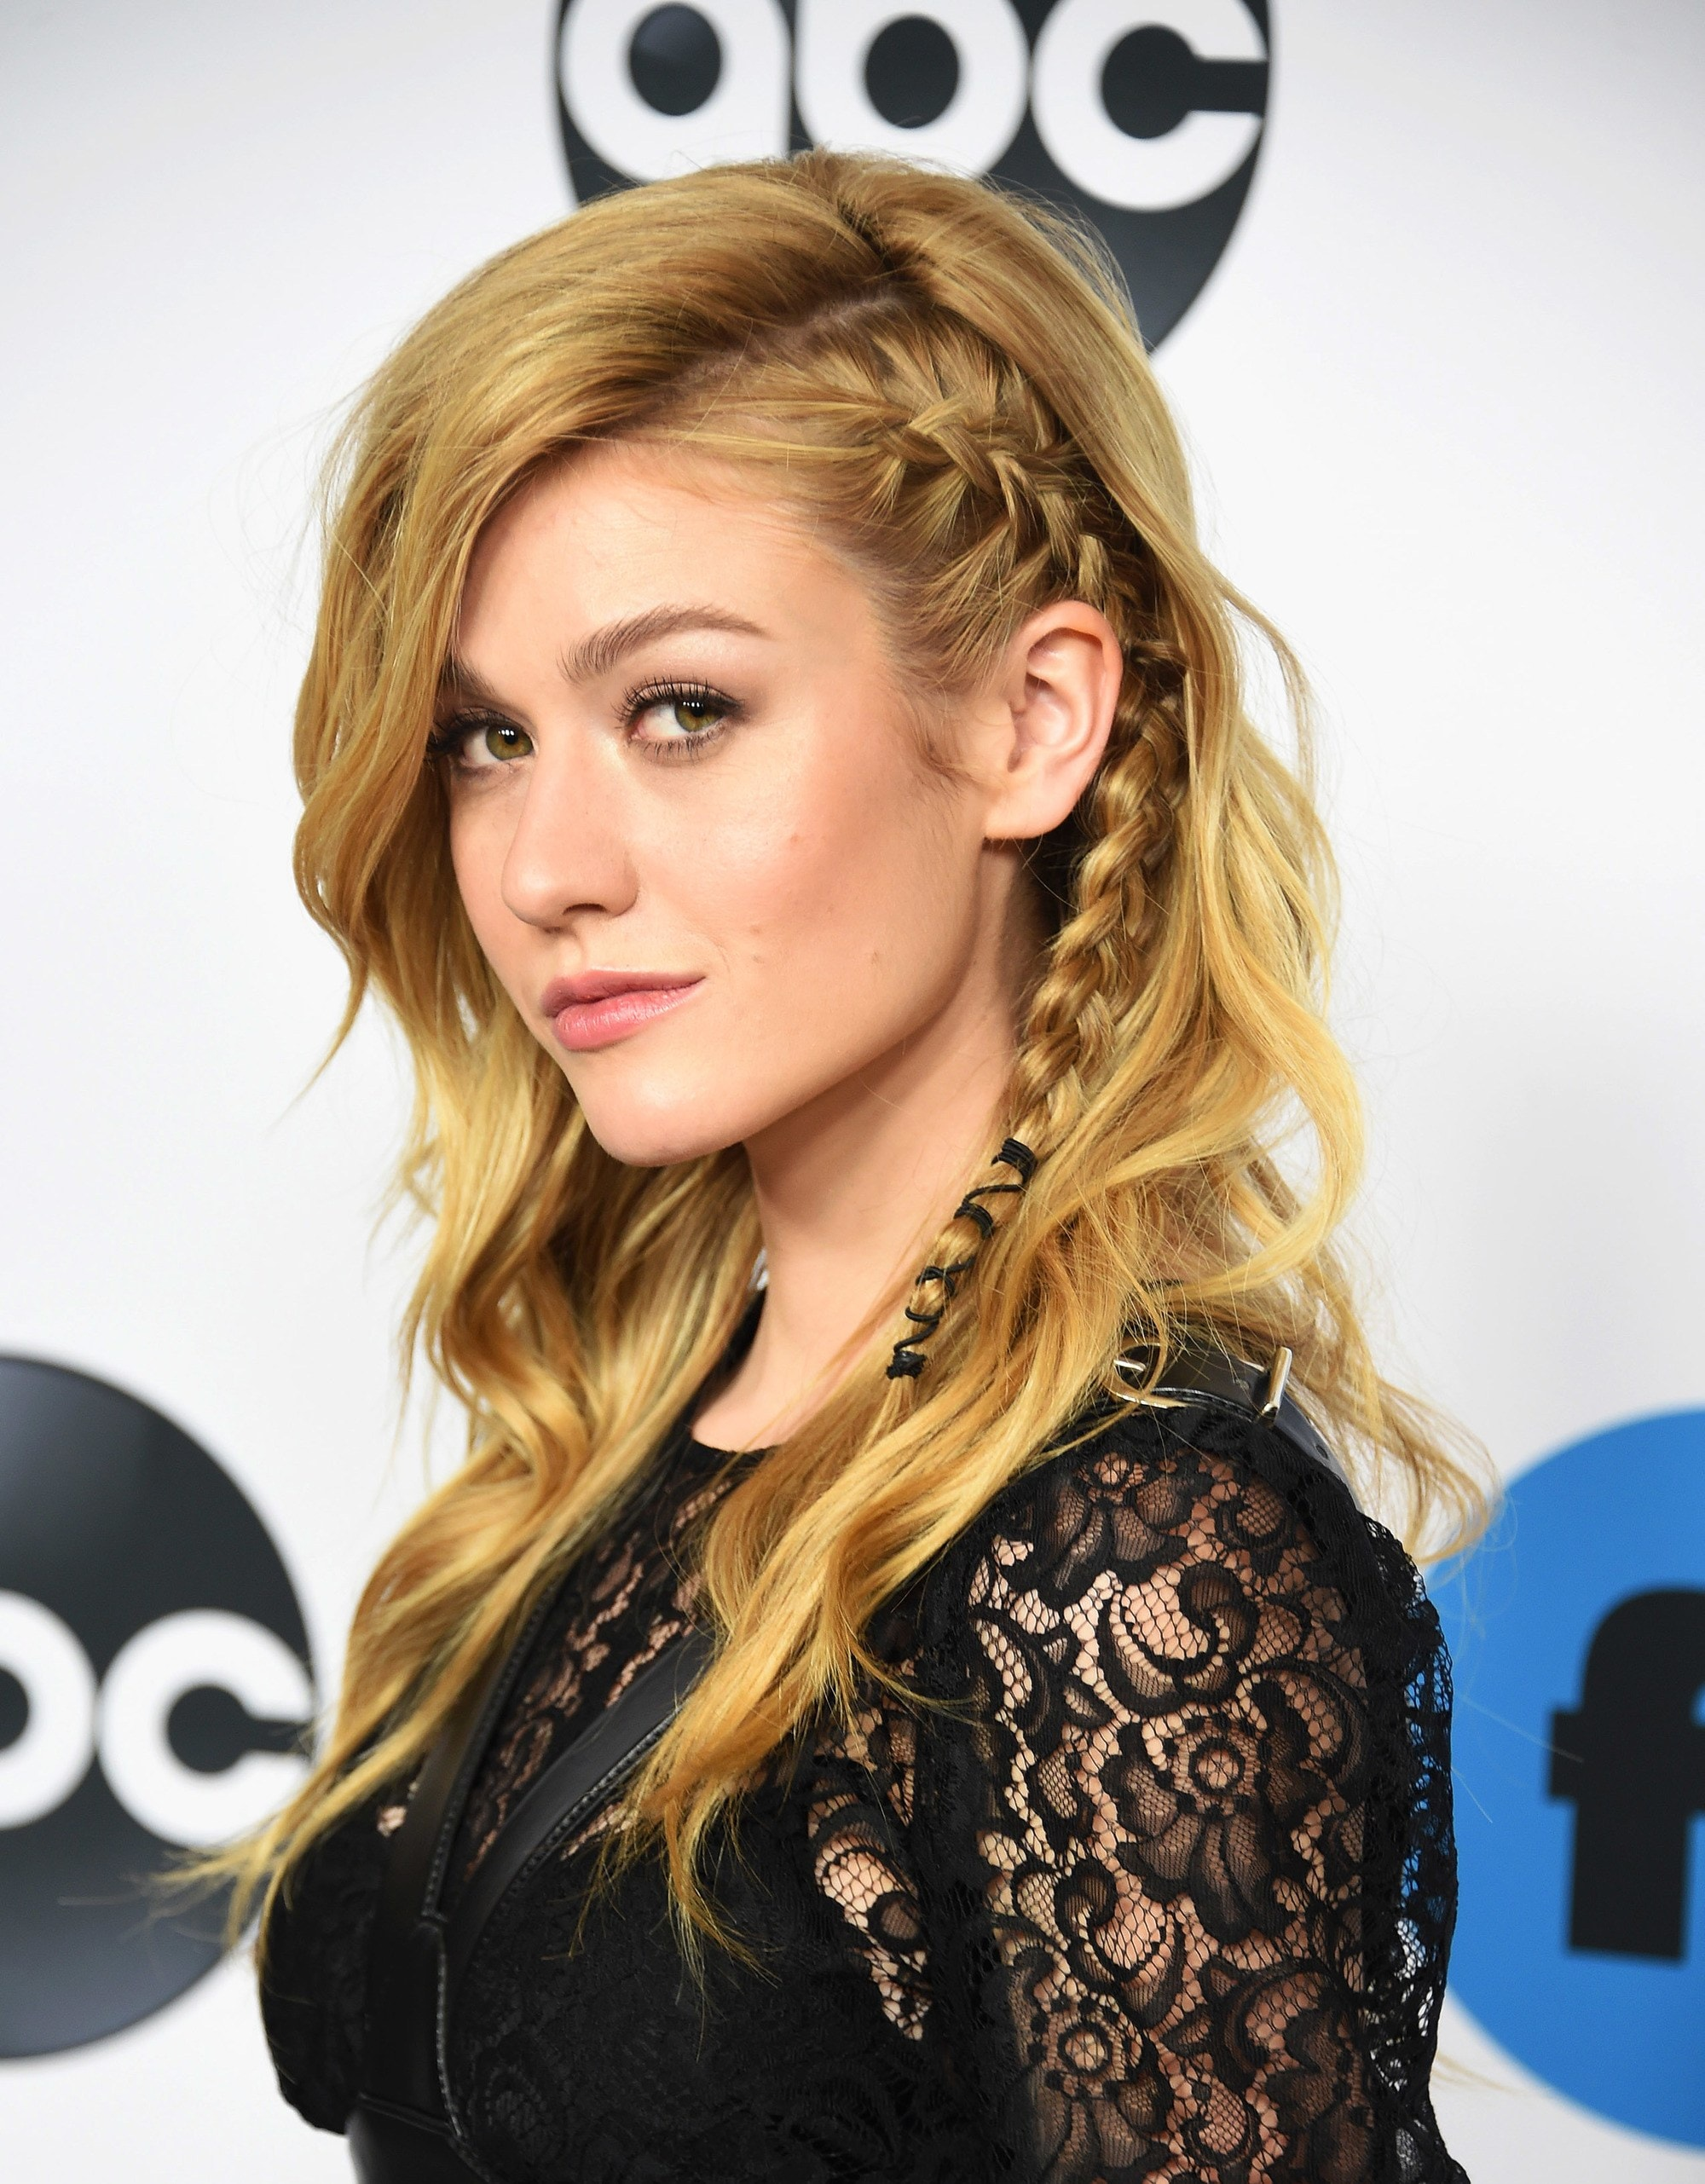 Side hairstyles: Katherine McNamara with golden blonde hair in a side undercut braided style with waves